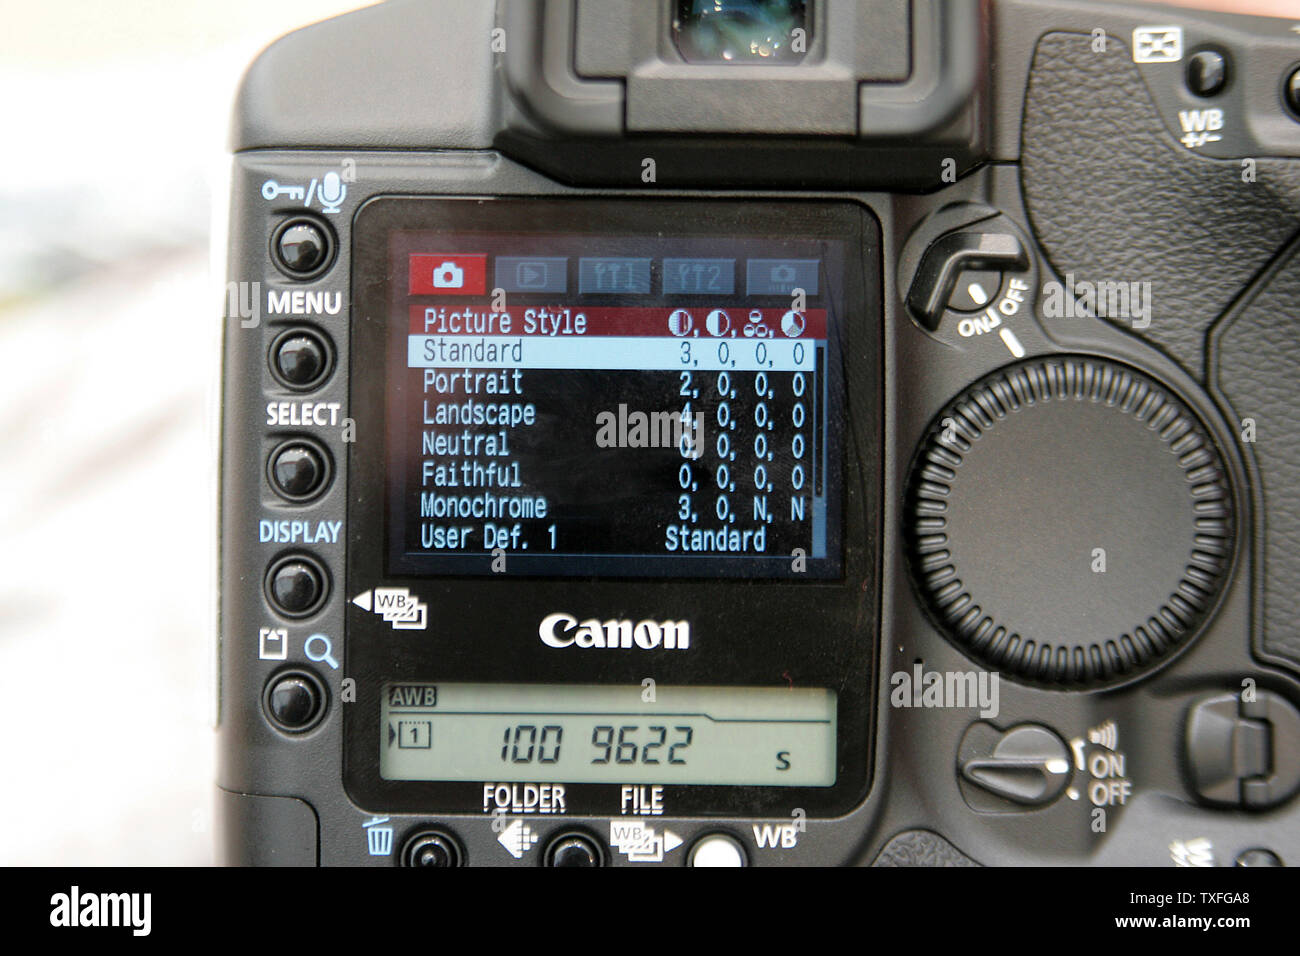 Canon Introduces The Newest Professional Digital Eos 1d Mark Ii N Model Camera At Ifa 2005 World Of Consumer Electronics Trade Fair In Berlin Germany September 6 2005 2005 Successor To The